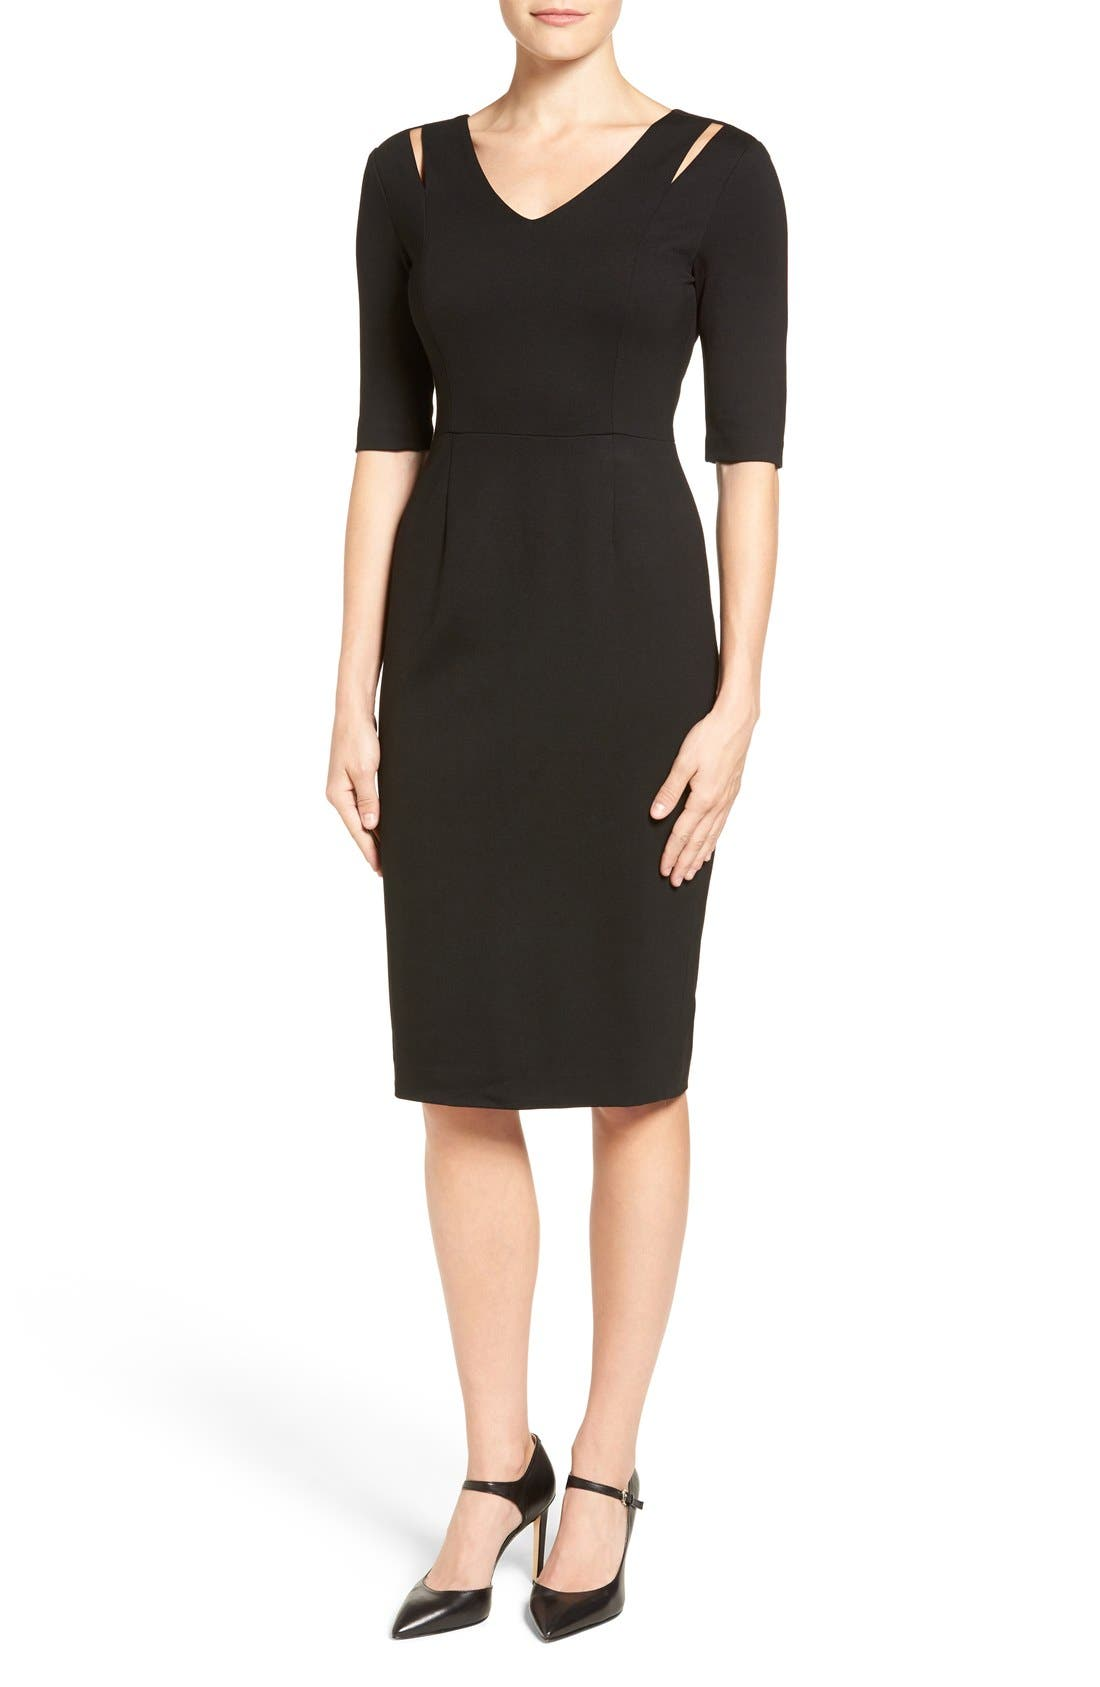 Alternate Image 1 Selected - Halogen® Cutout Shoulder Sheath Dress (Regular & Petite)